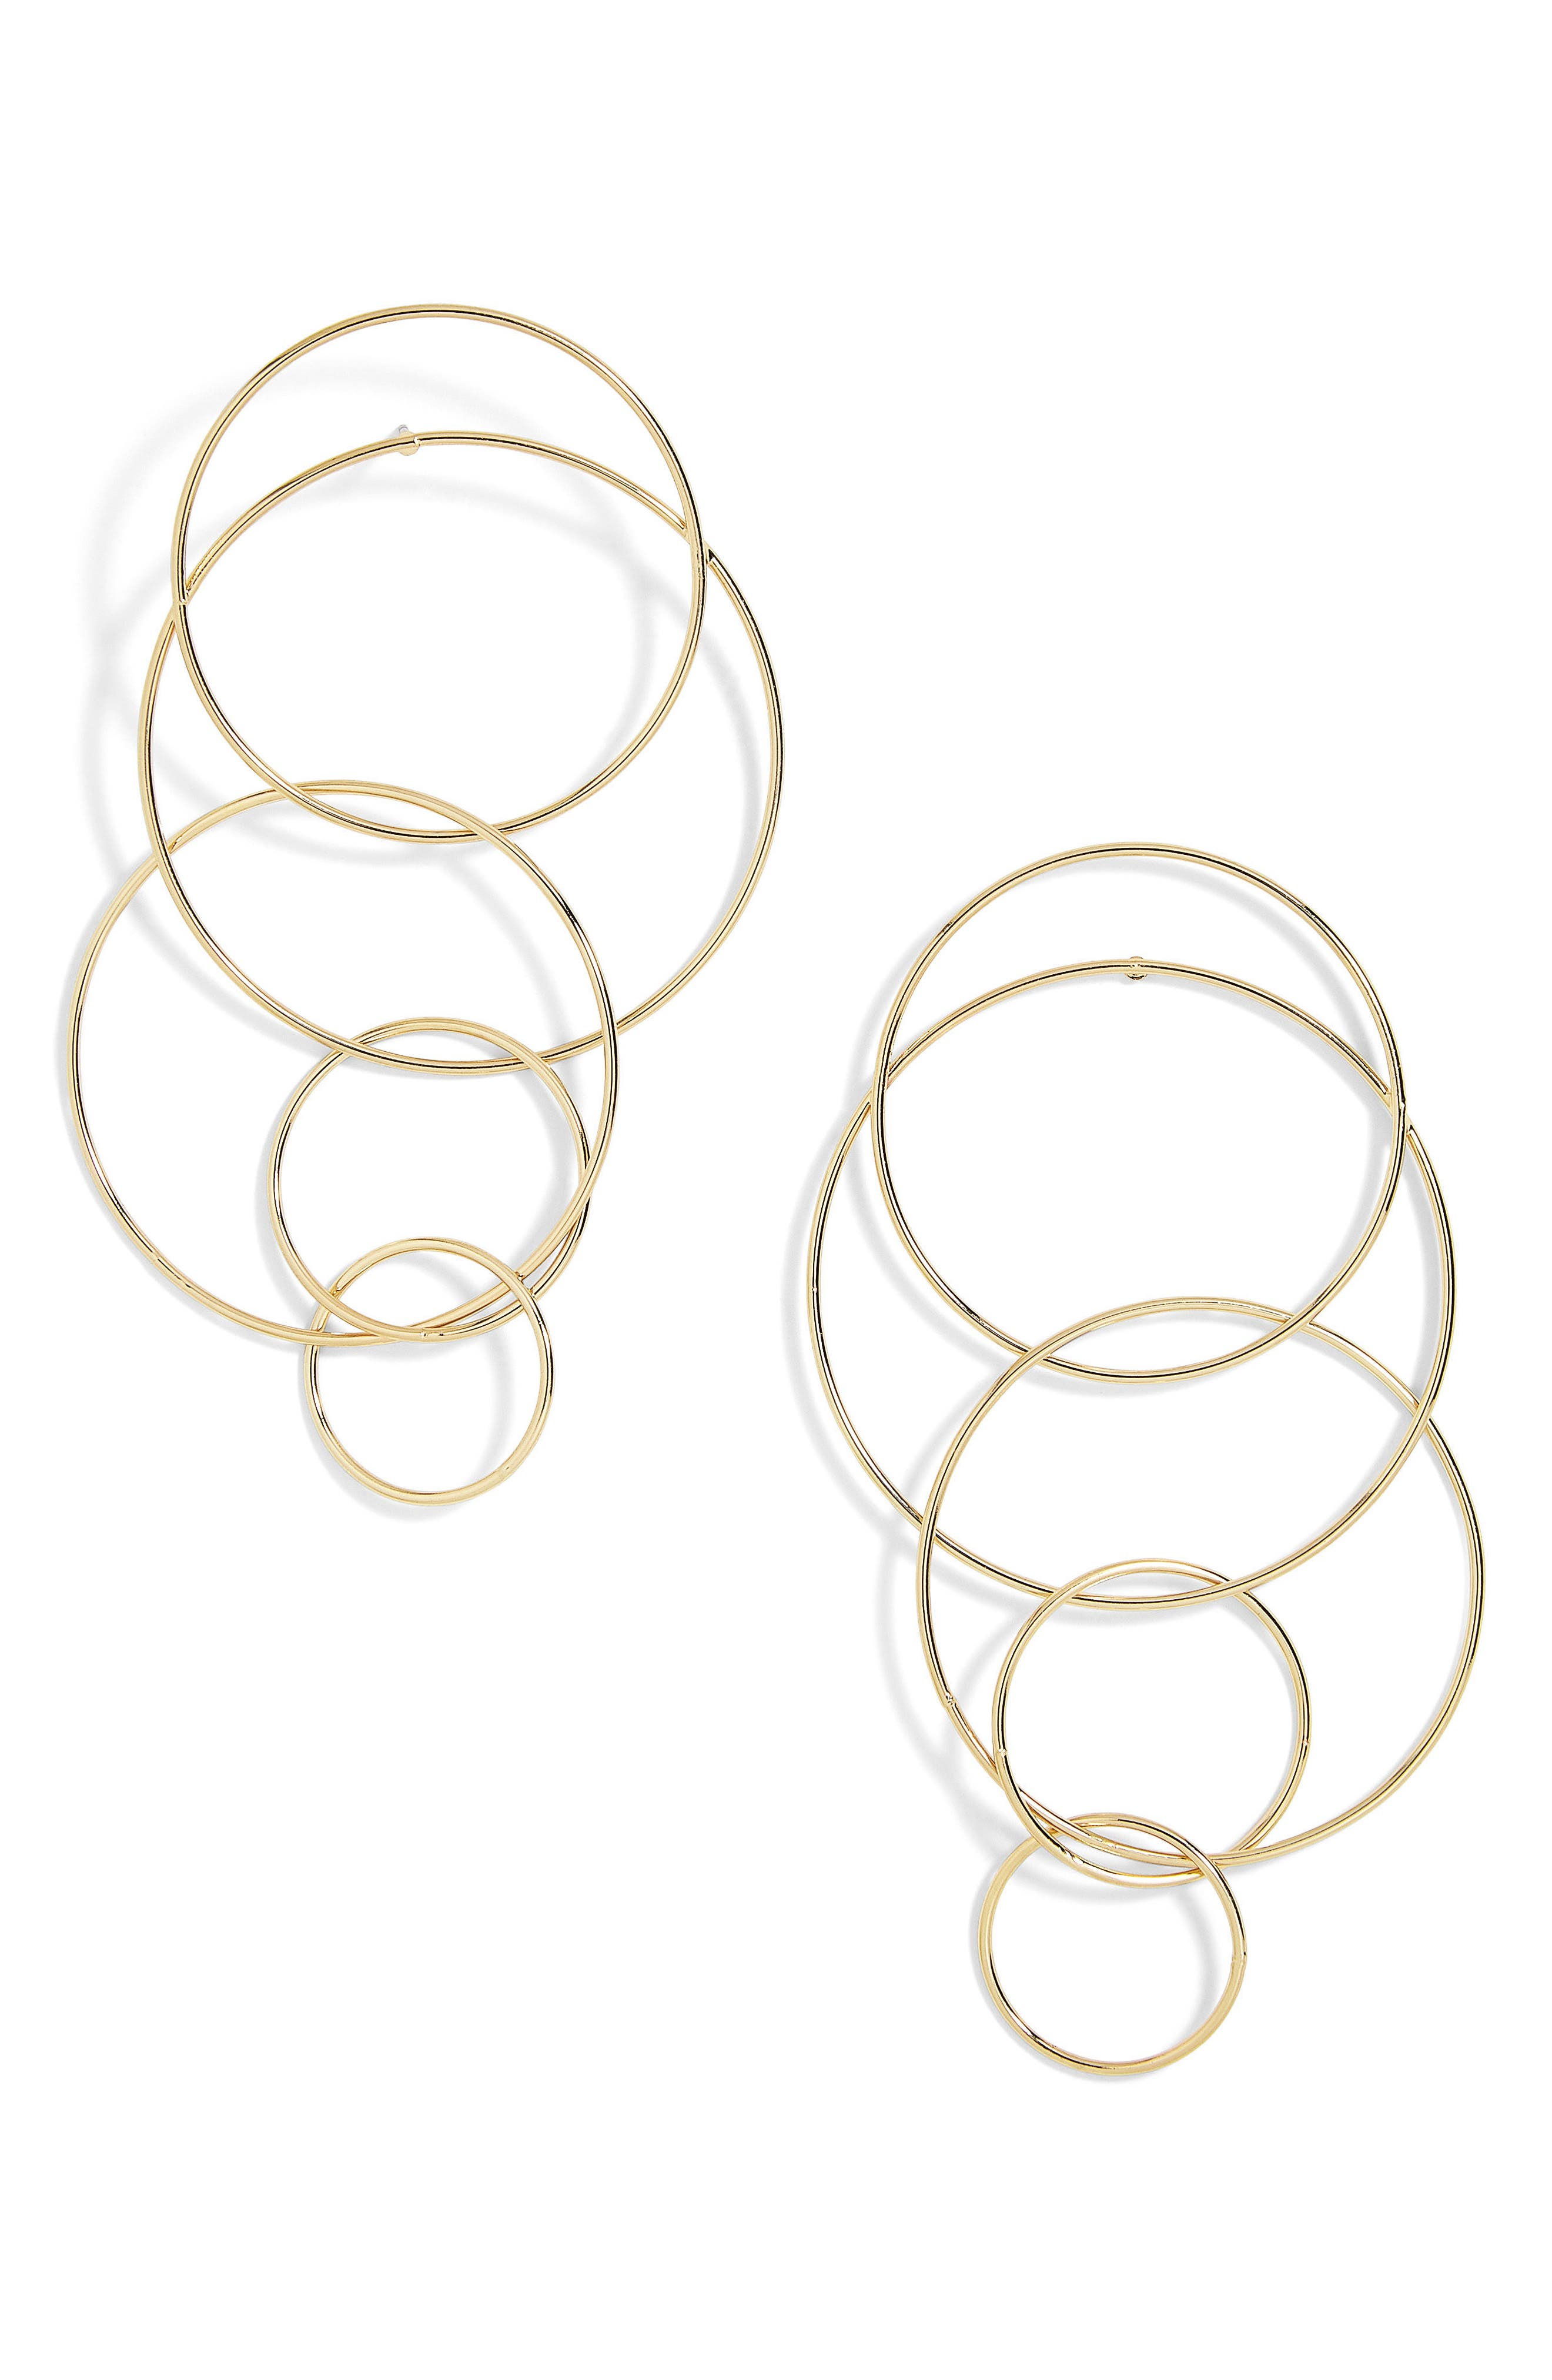 Mixed Size Layered Hoop Earrings,                         Main,                         color, 710